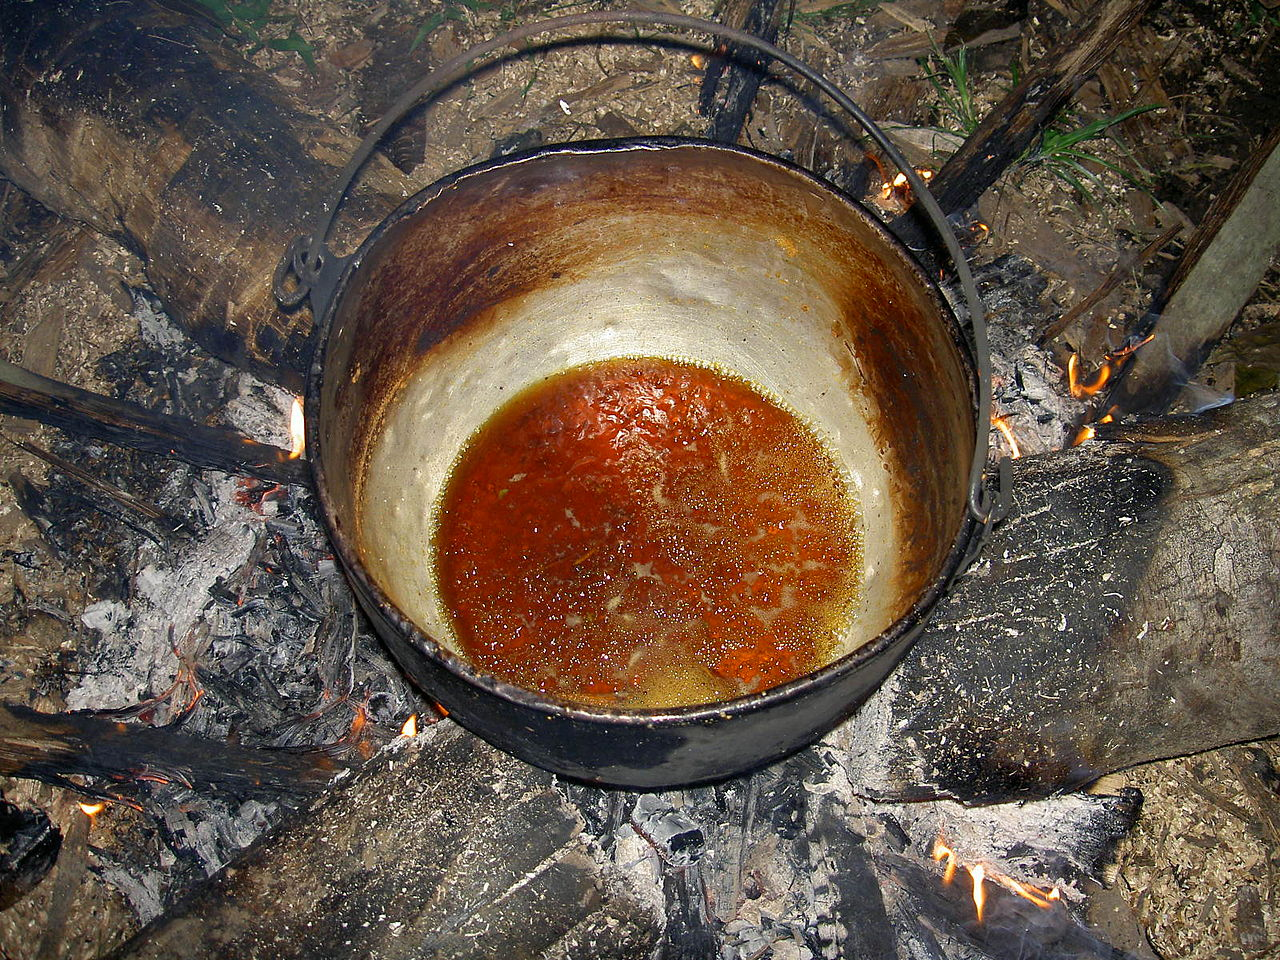 How to make ayahuasca from Banisteriopsis caapi